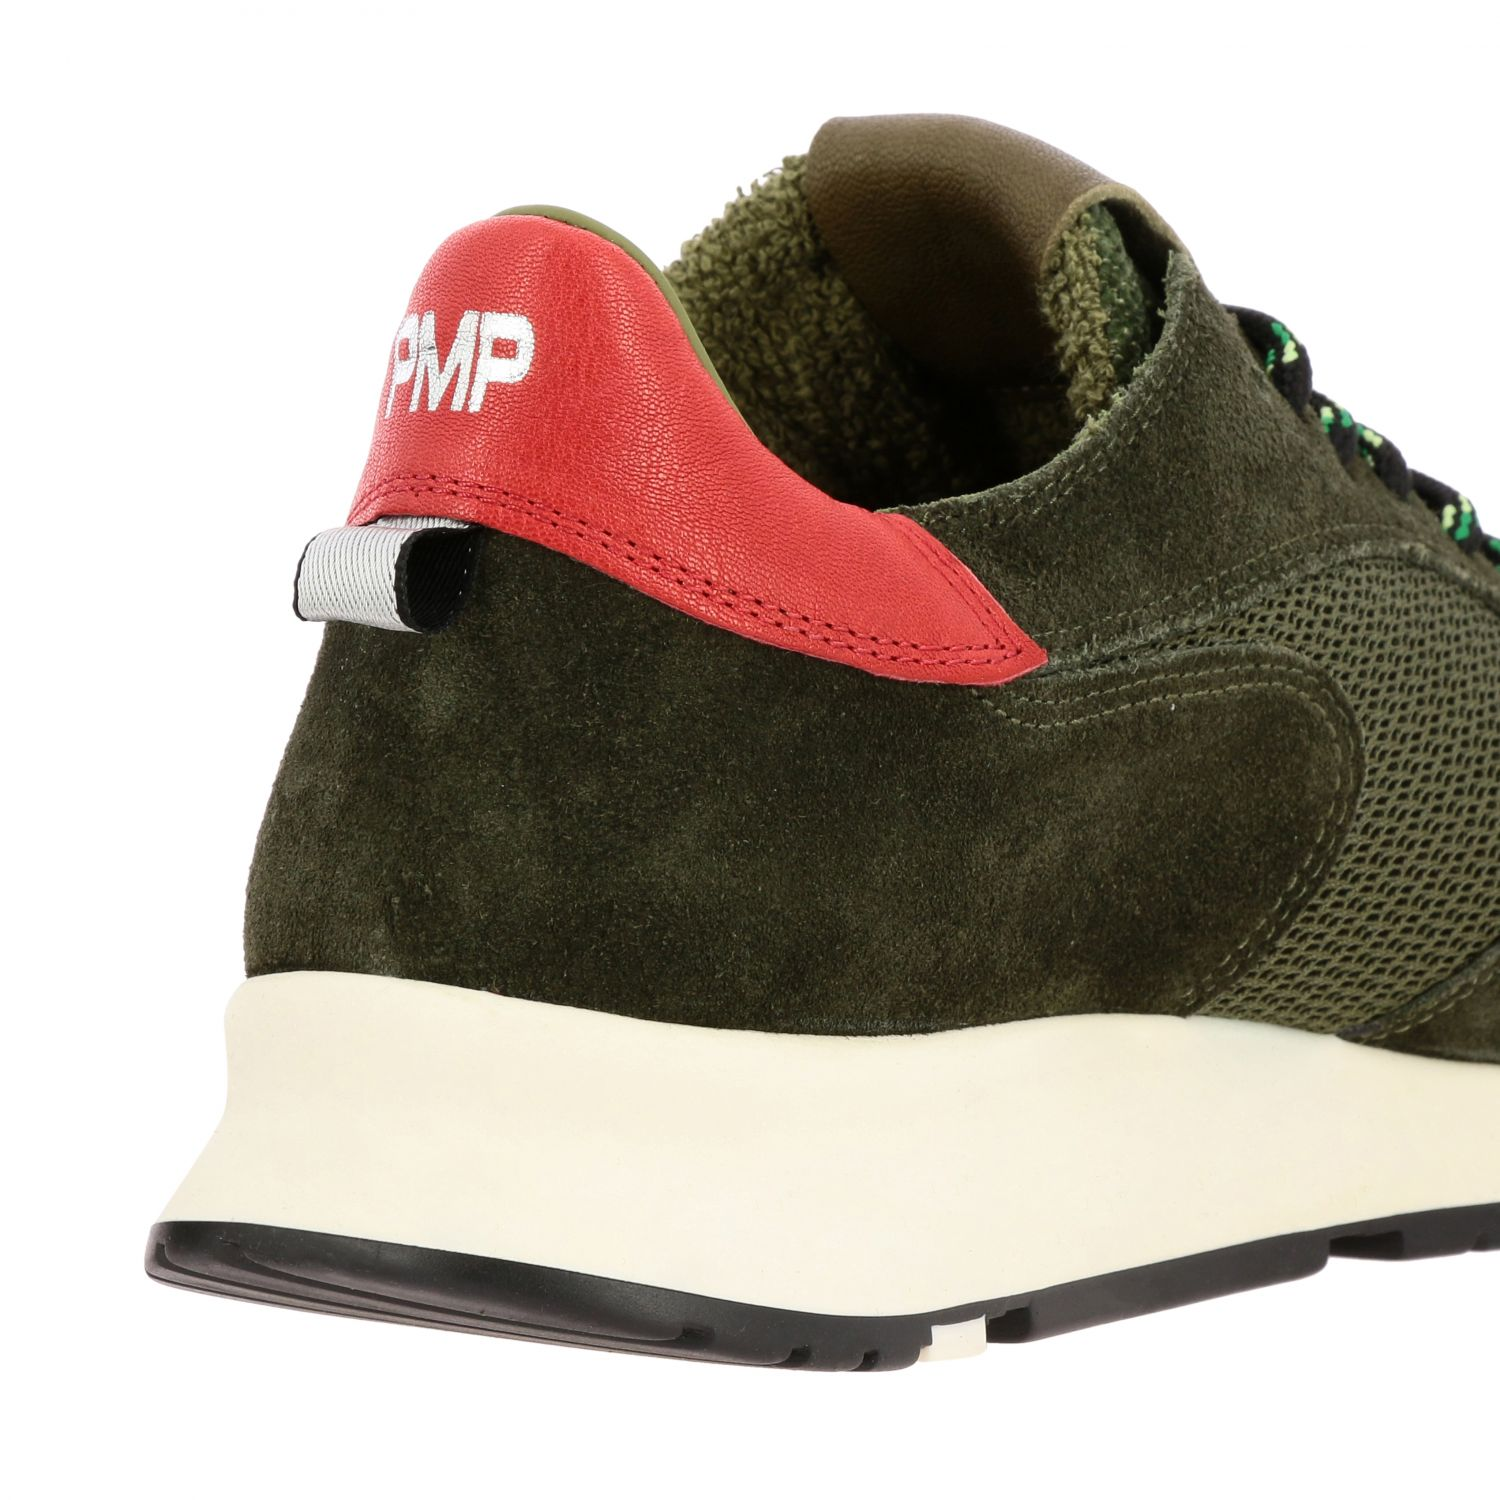 Shoes men Philippe Model military 5